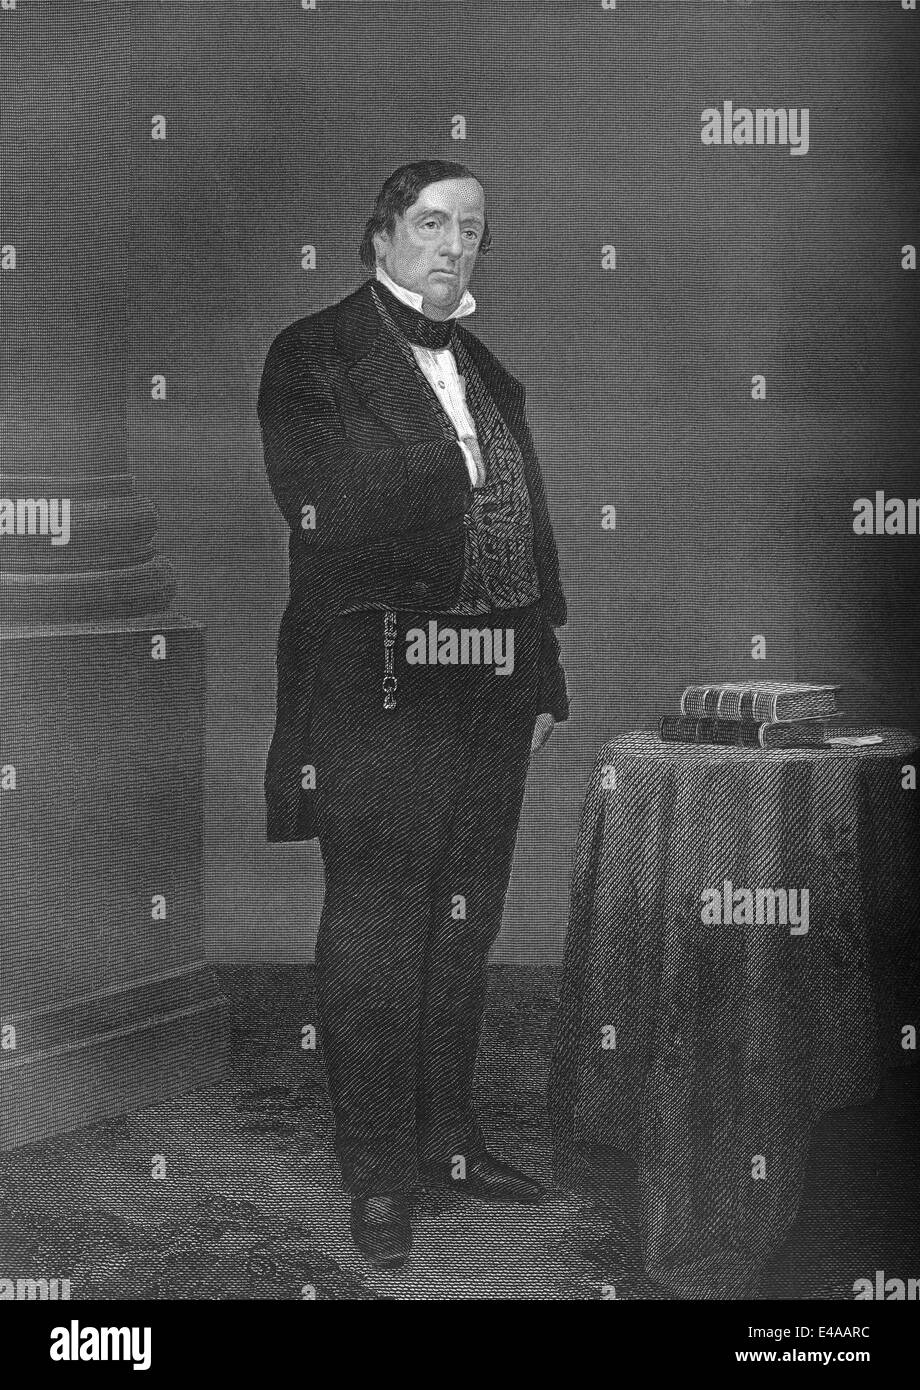 Lewis Cass, 1782 - 1866, an American military officer and politician, Stock Photo